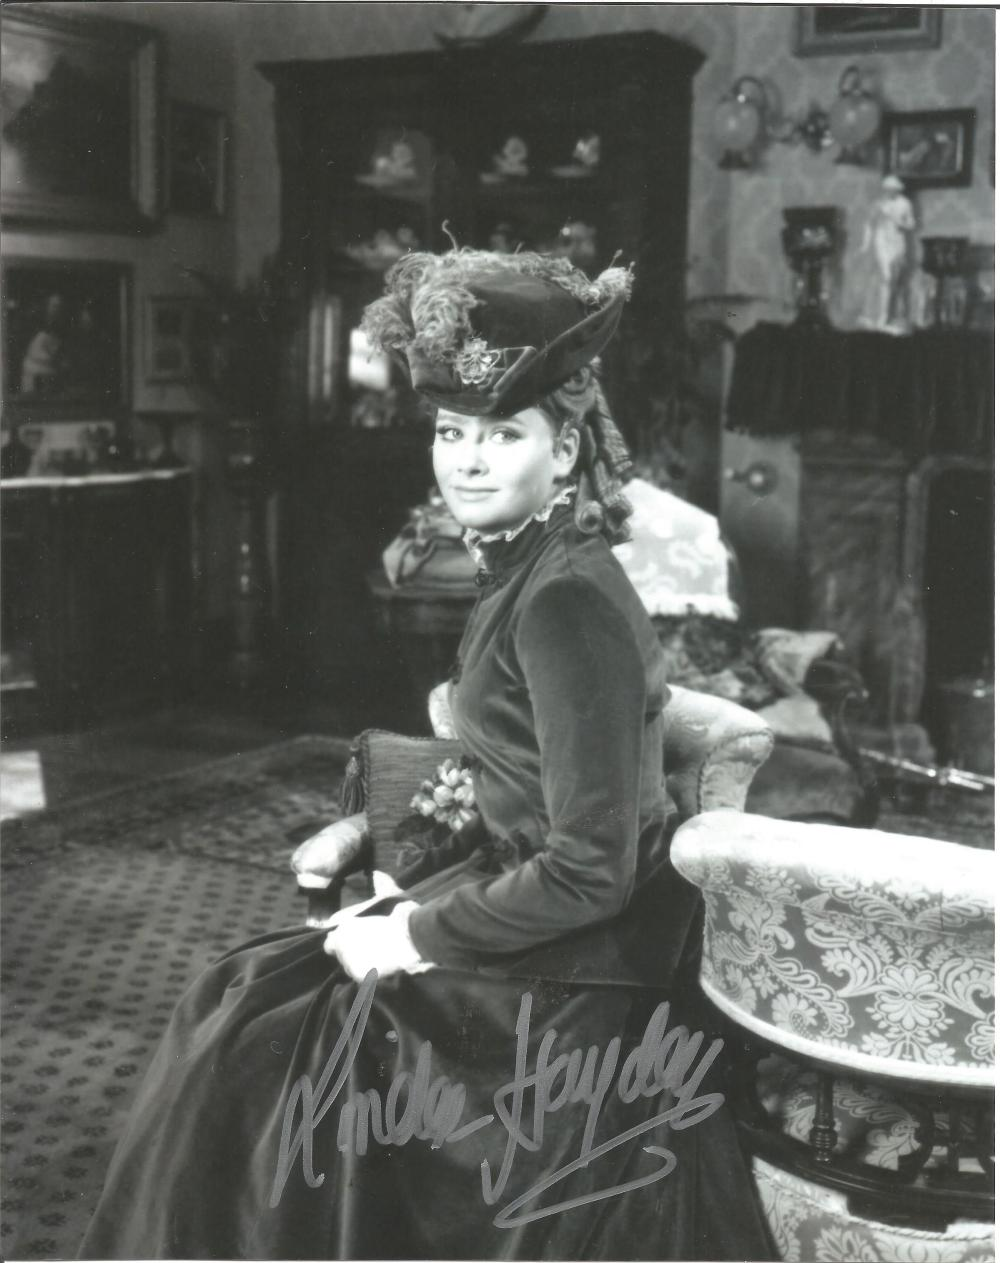 Linda Hayden Hammer Horror hand signed 10x8 photo. This beautiful hand-signed photo depicts Linda